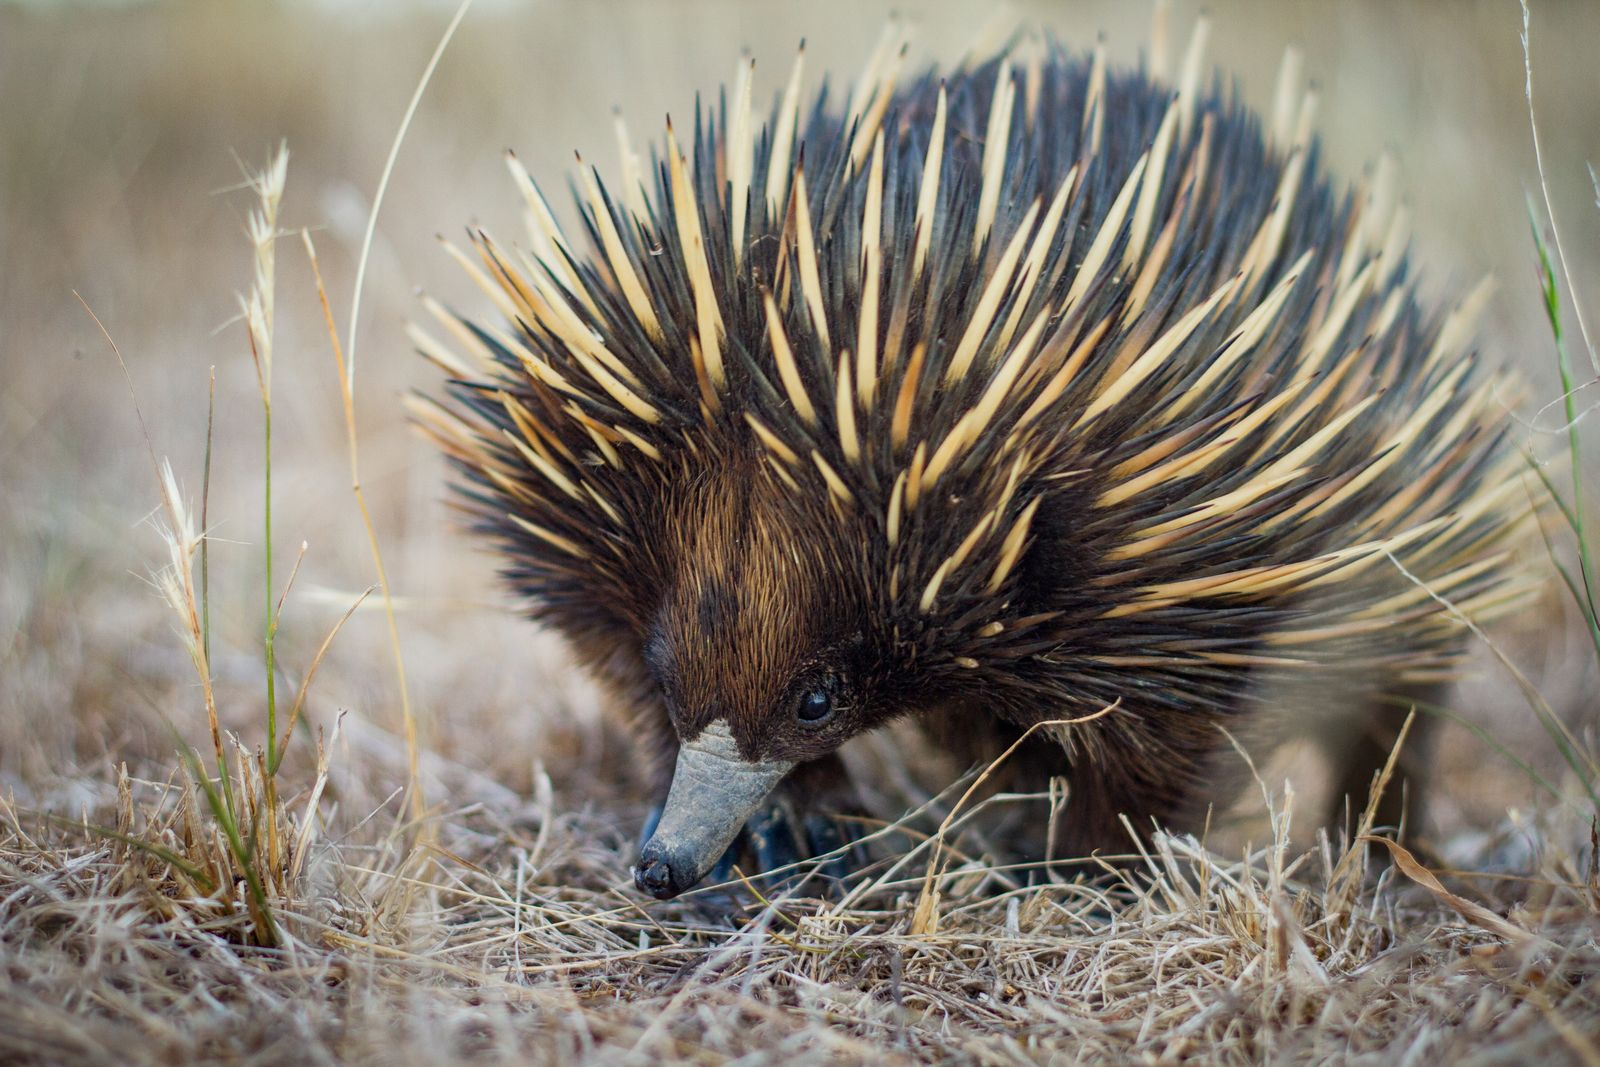 Australian native spiny ant eater echidna close up on face